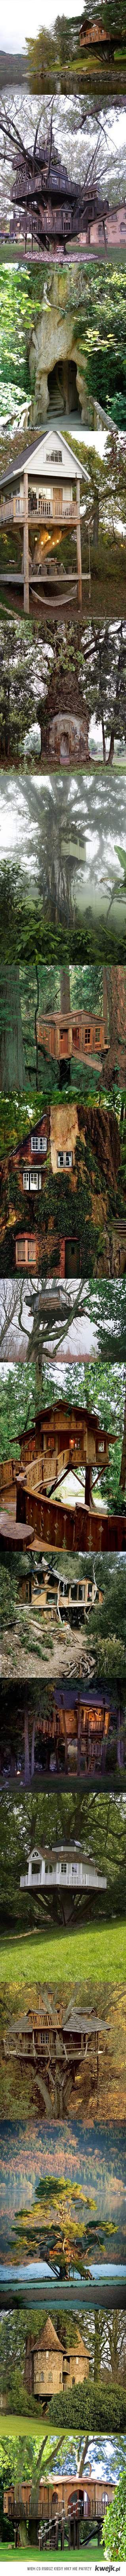 awesome tree houses. I want one!